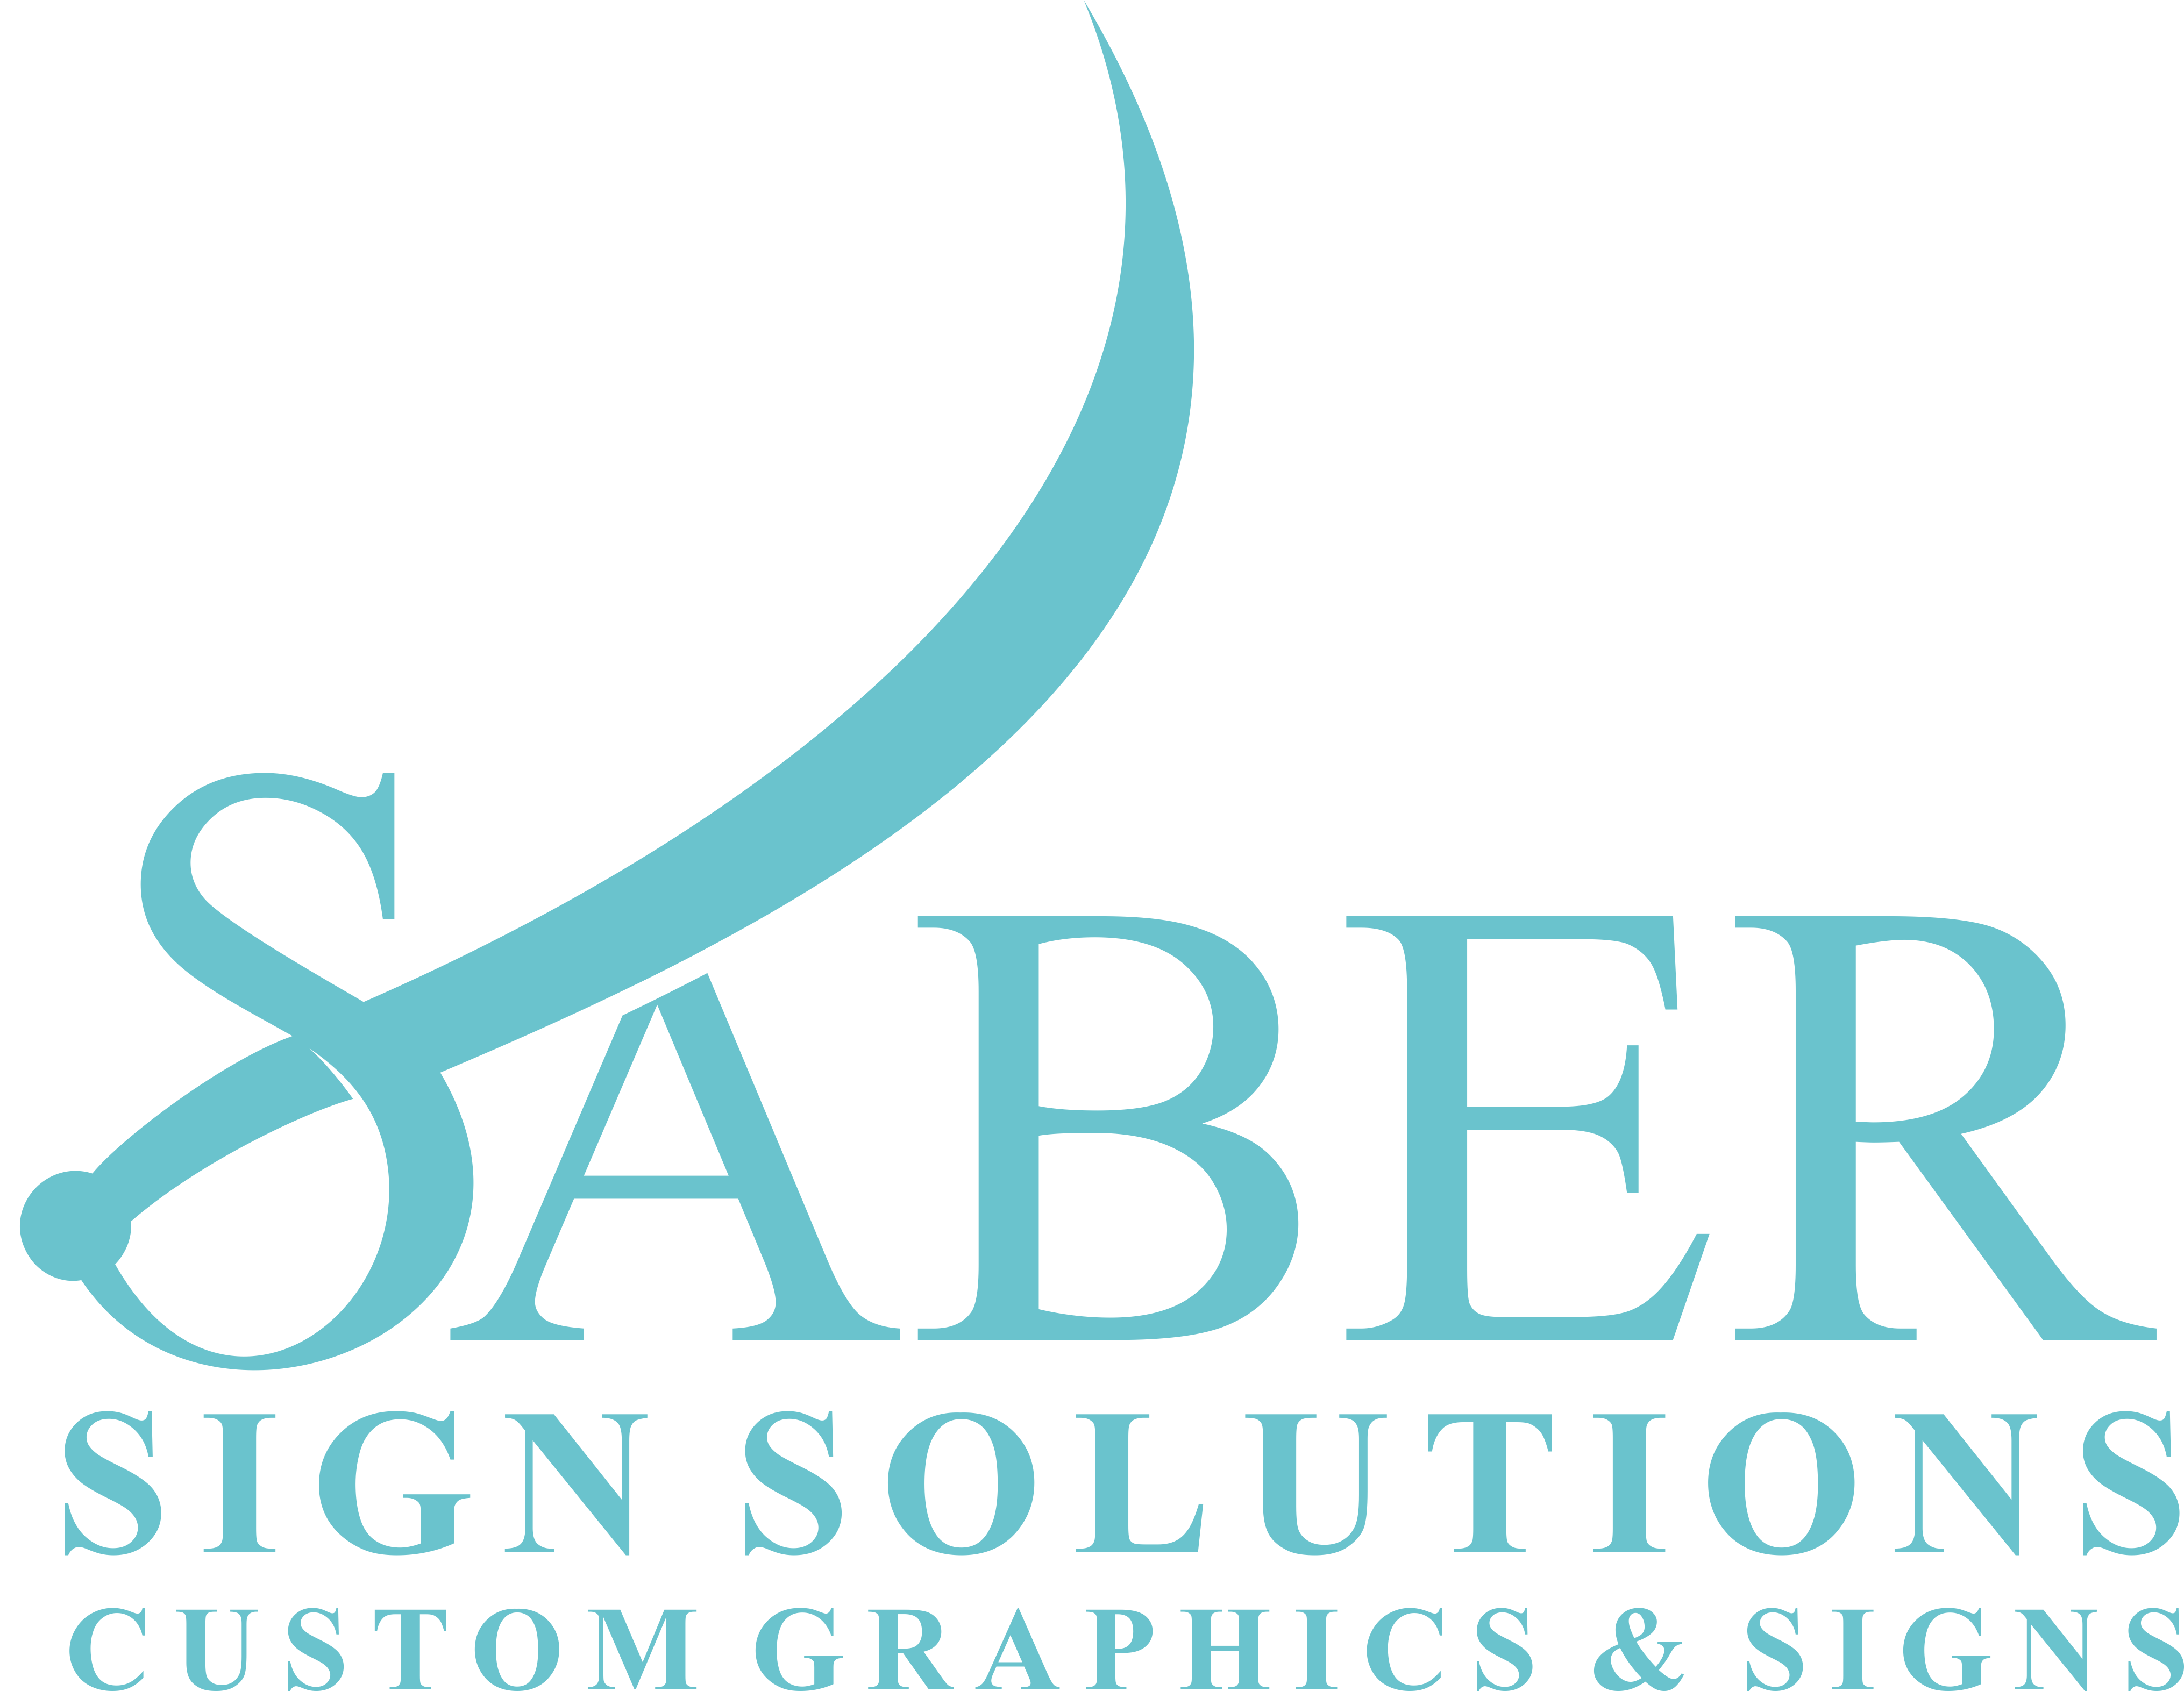 Design eye-catching, easily remembered logo for Saber Sign Solutions